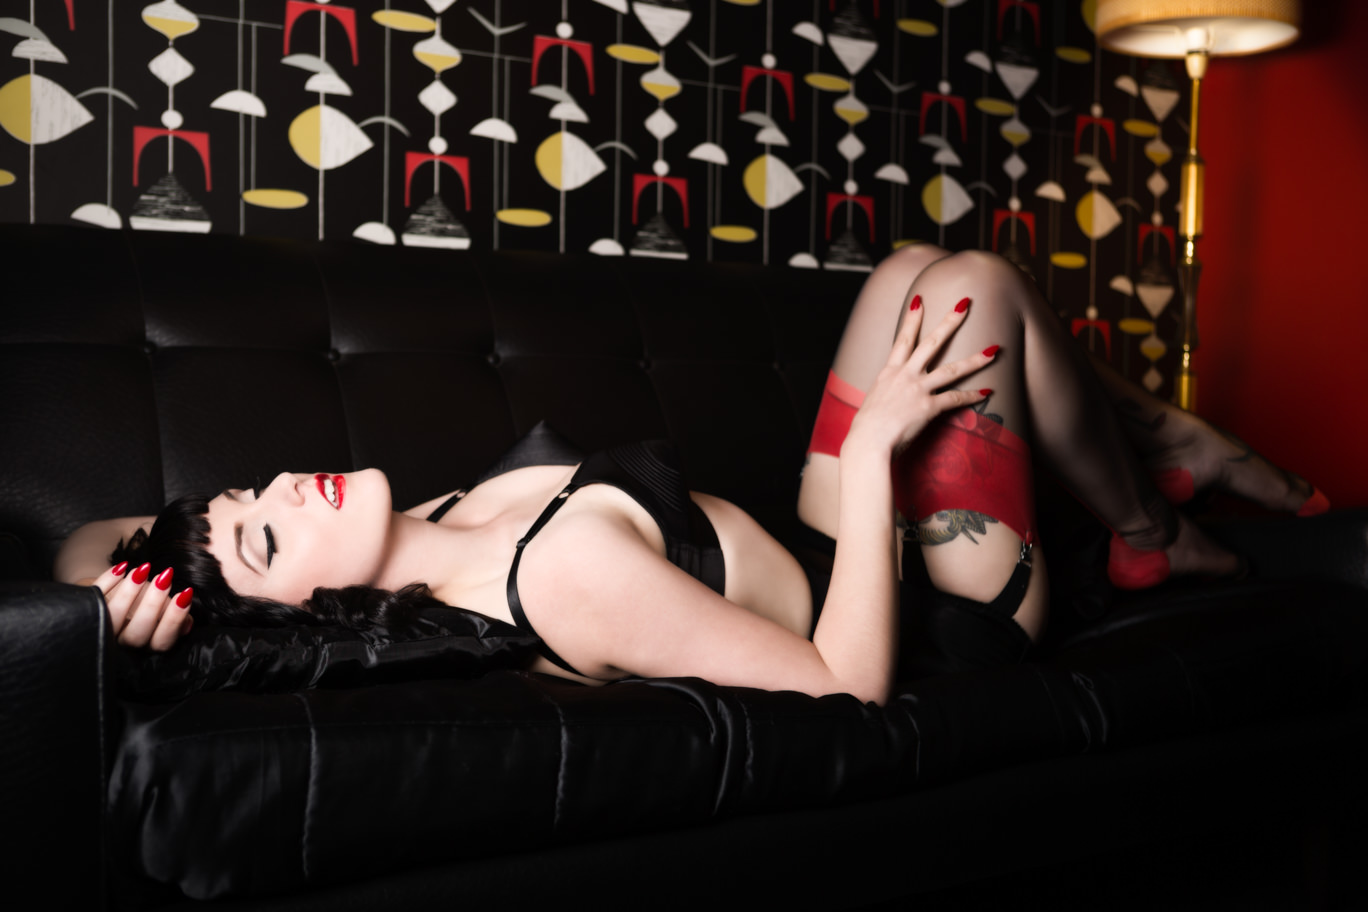 pinup girl in black lingerie boudoir photoshoot